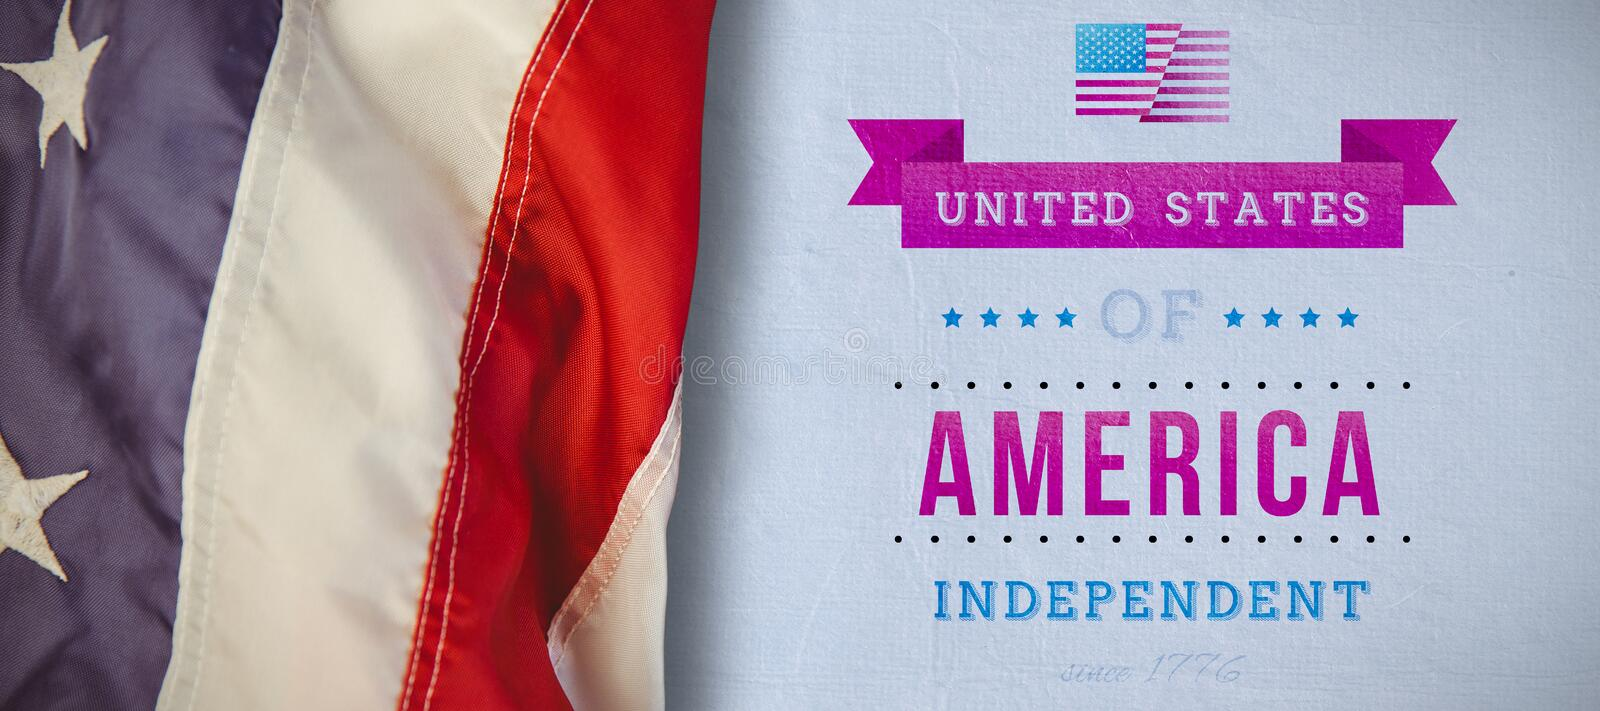 Composite image of us flag. US flag against independence day graphic royalty free stock images